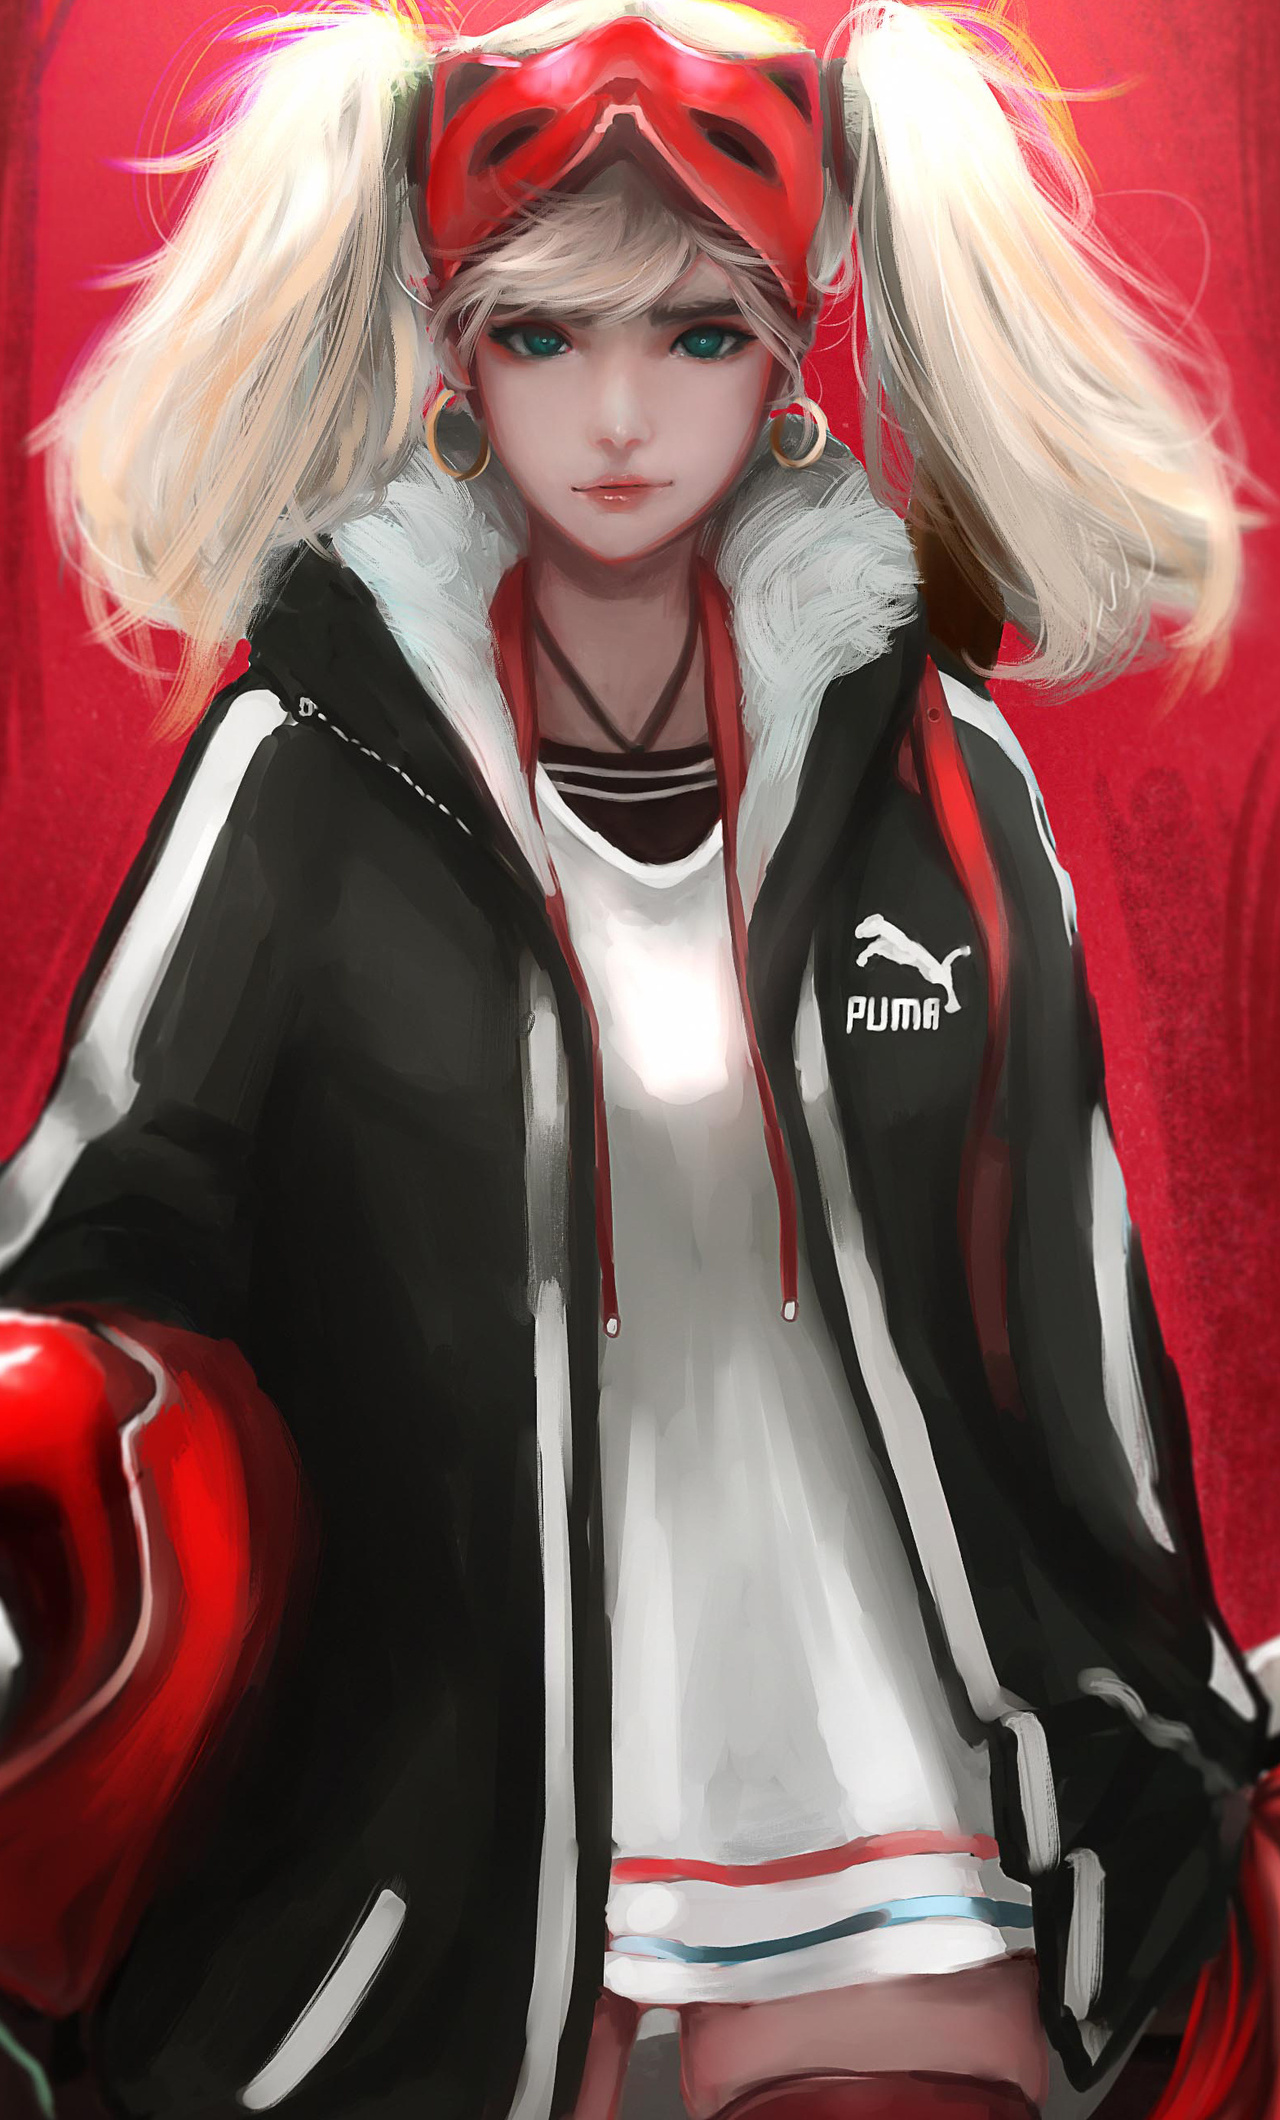 1280x2120 Ann Takamaki Biker Girl Anime 5k Iphone 6 Hd 4k Wallpapers Images Backgrounds Photos And Pictures